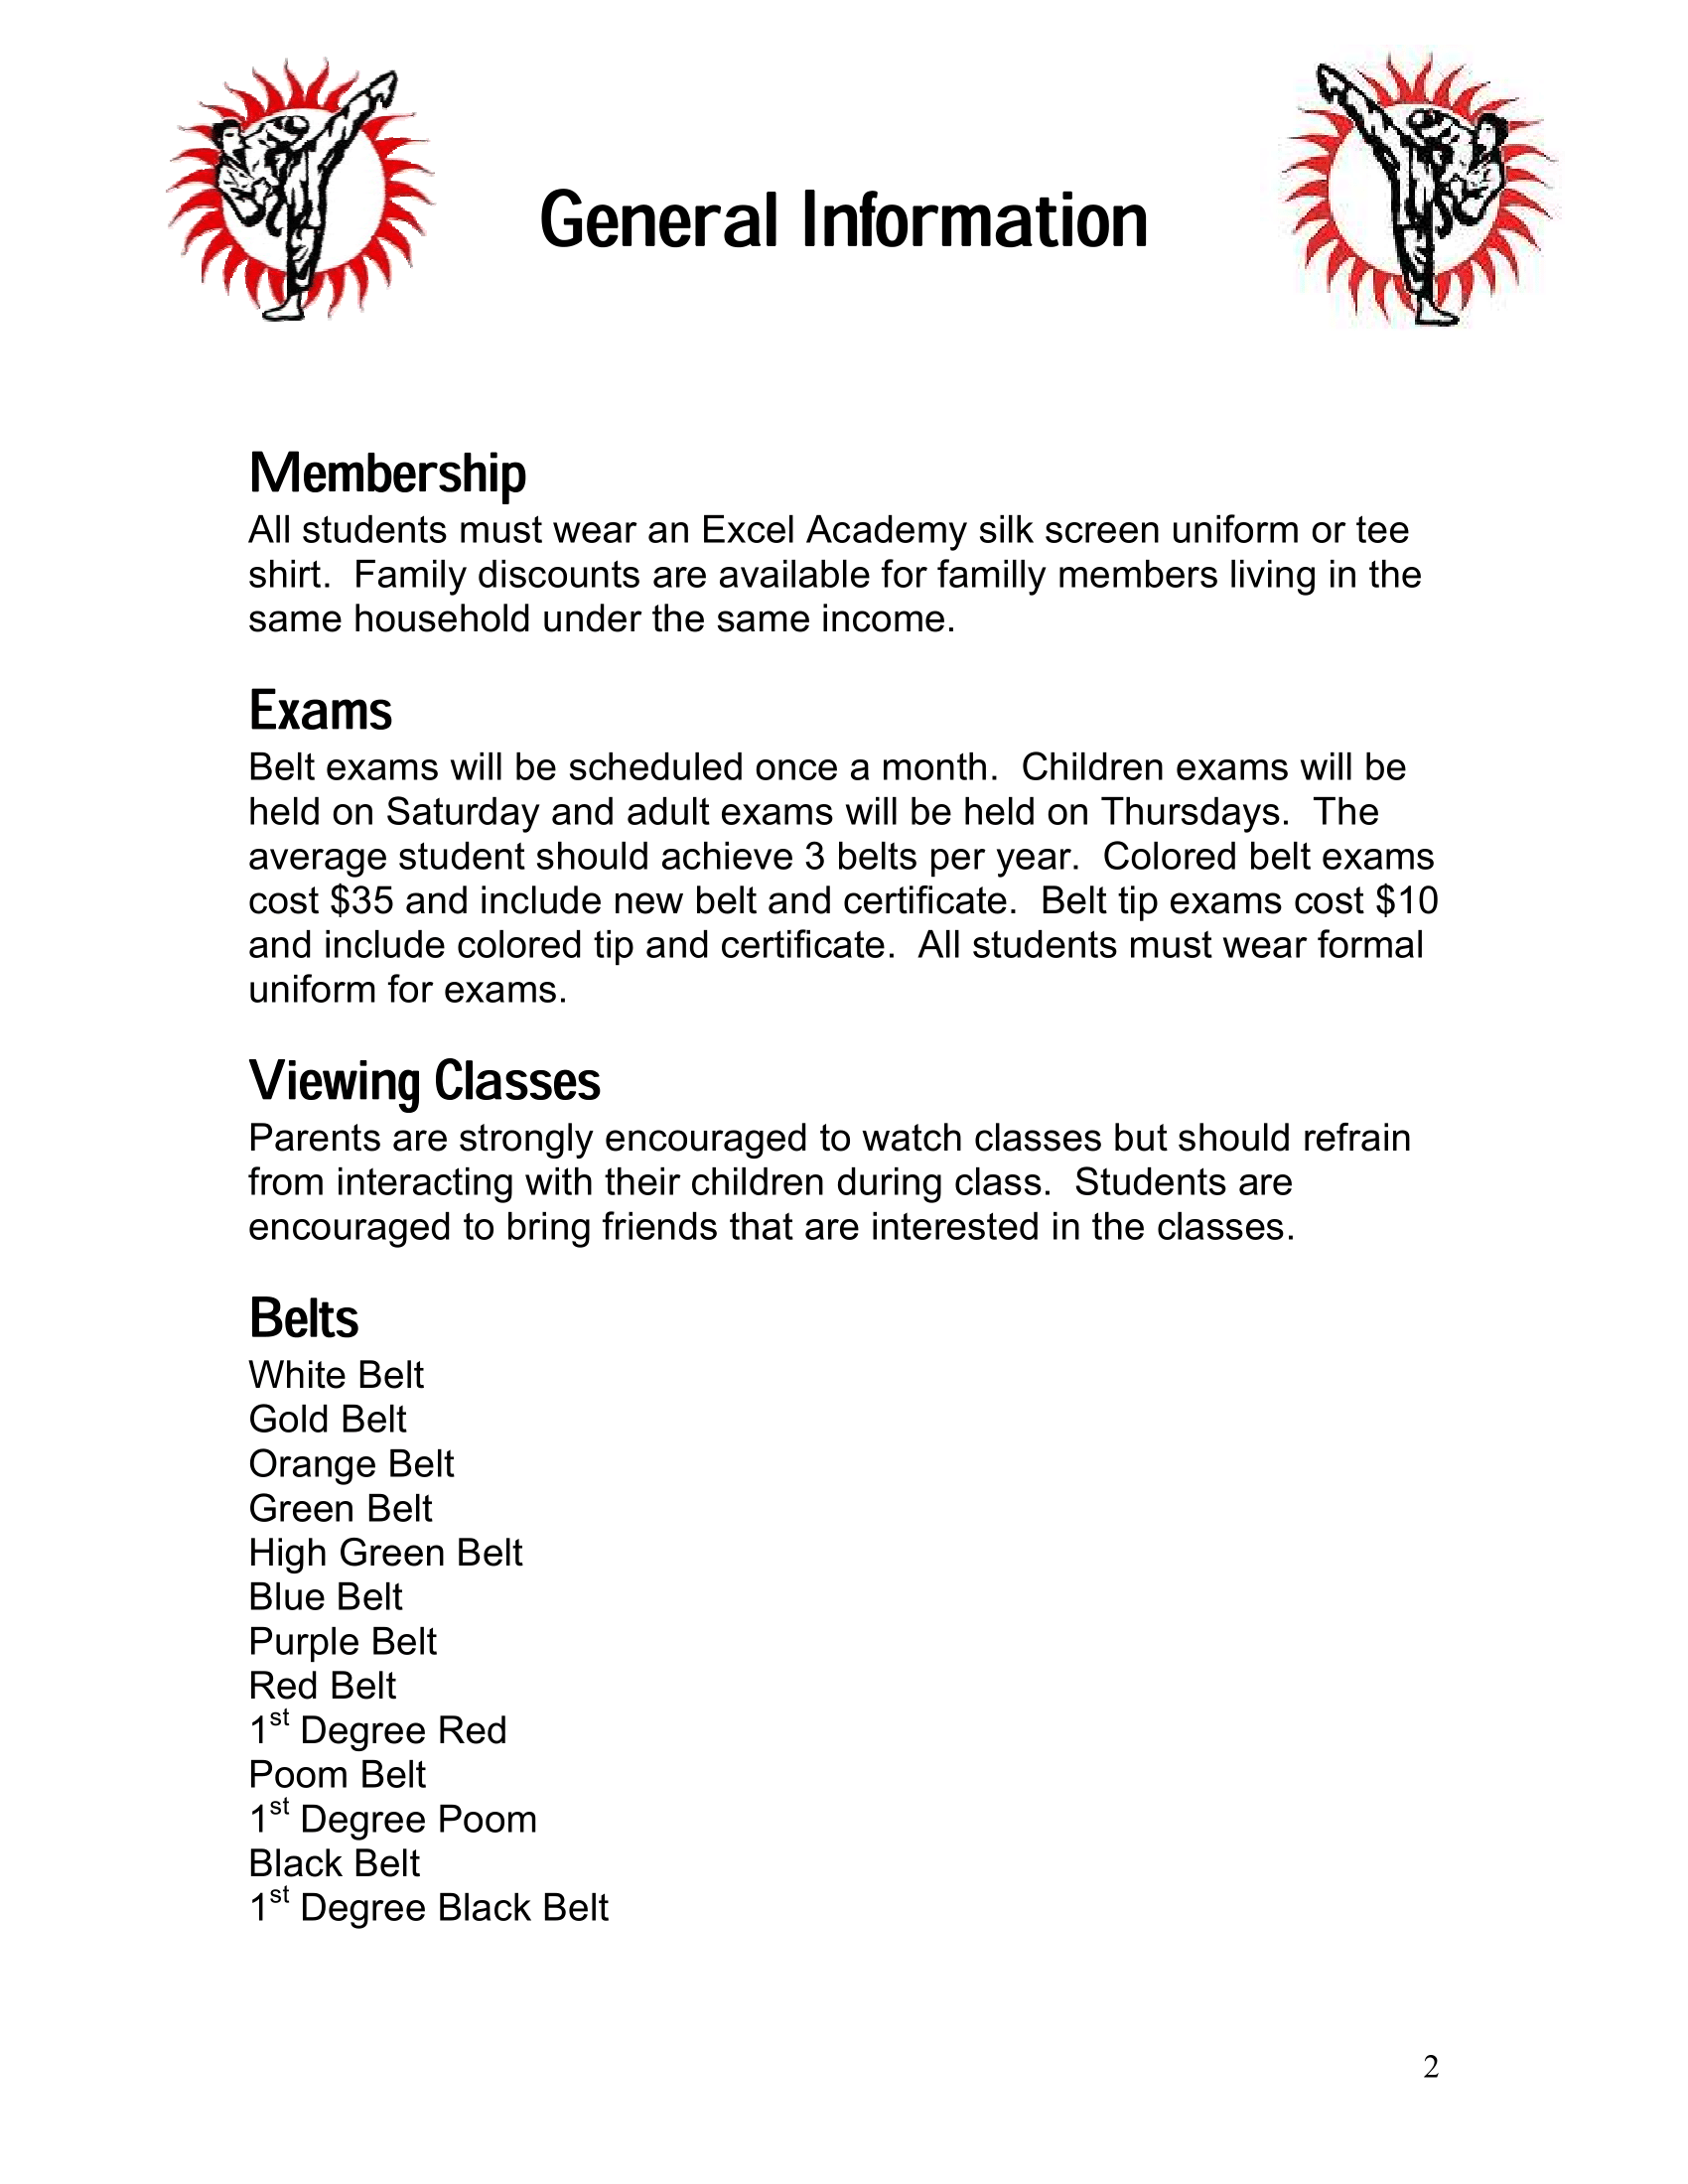 Page 2 of the Excel Academy Student Handbook